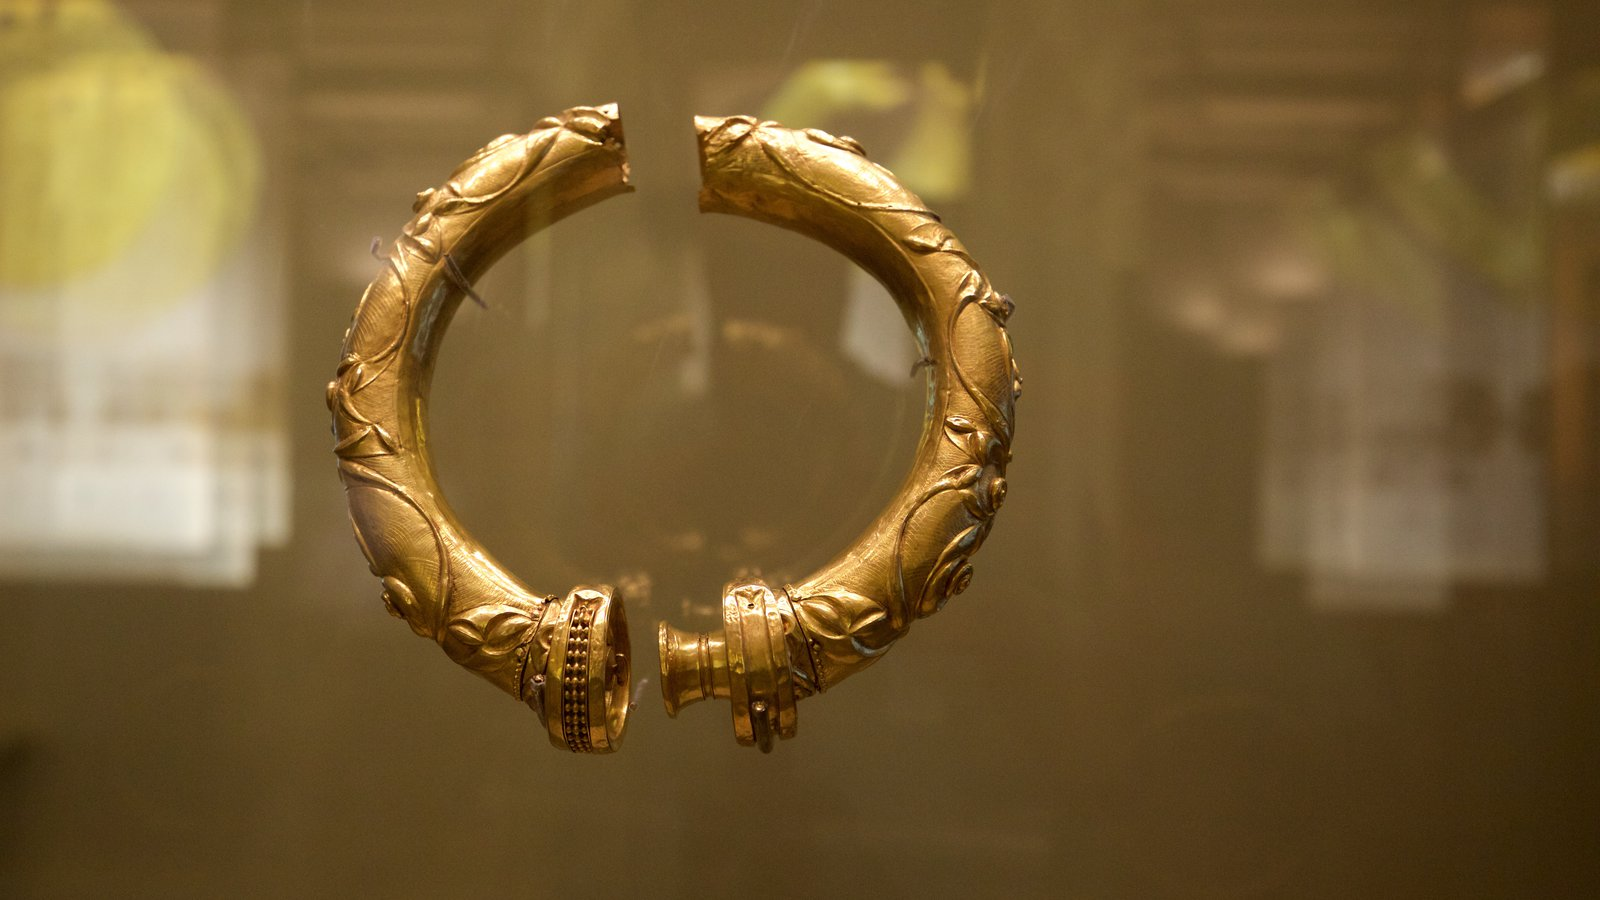 National Museum of Ireland - Archaeology and History which includes interior views and heritage elements